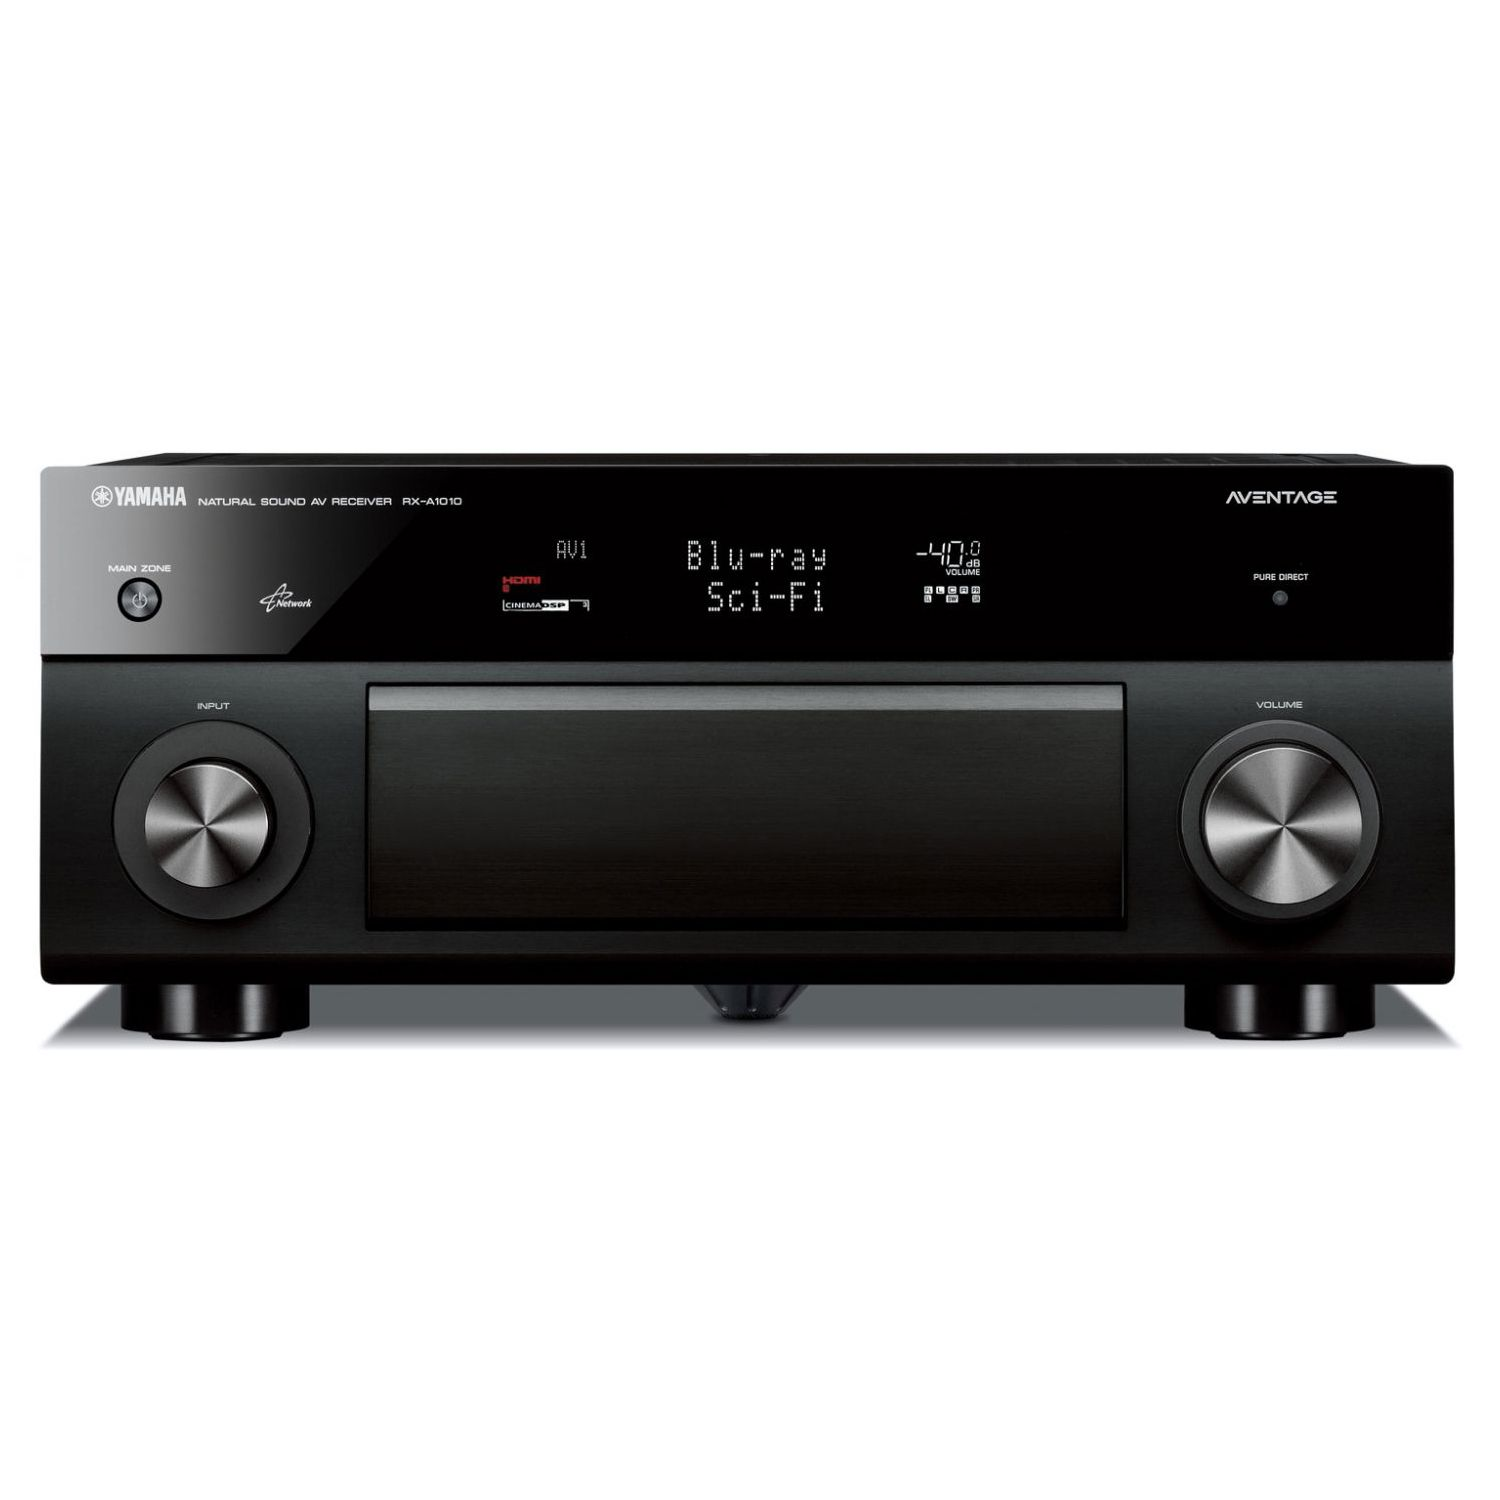 Accessories4less high end audio at low end prices for Yamaha receiver accessories